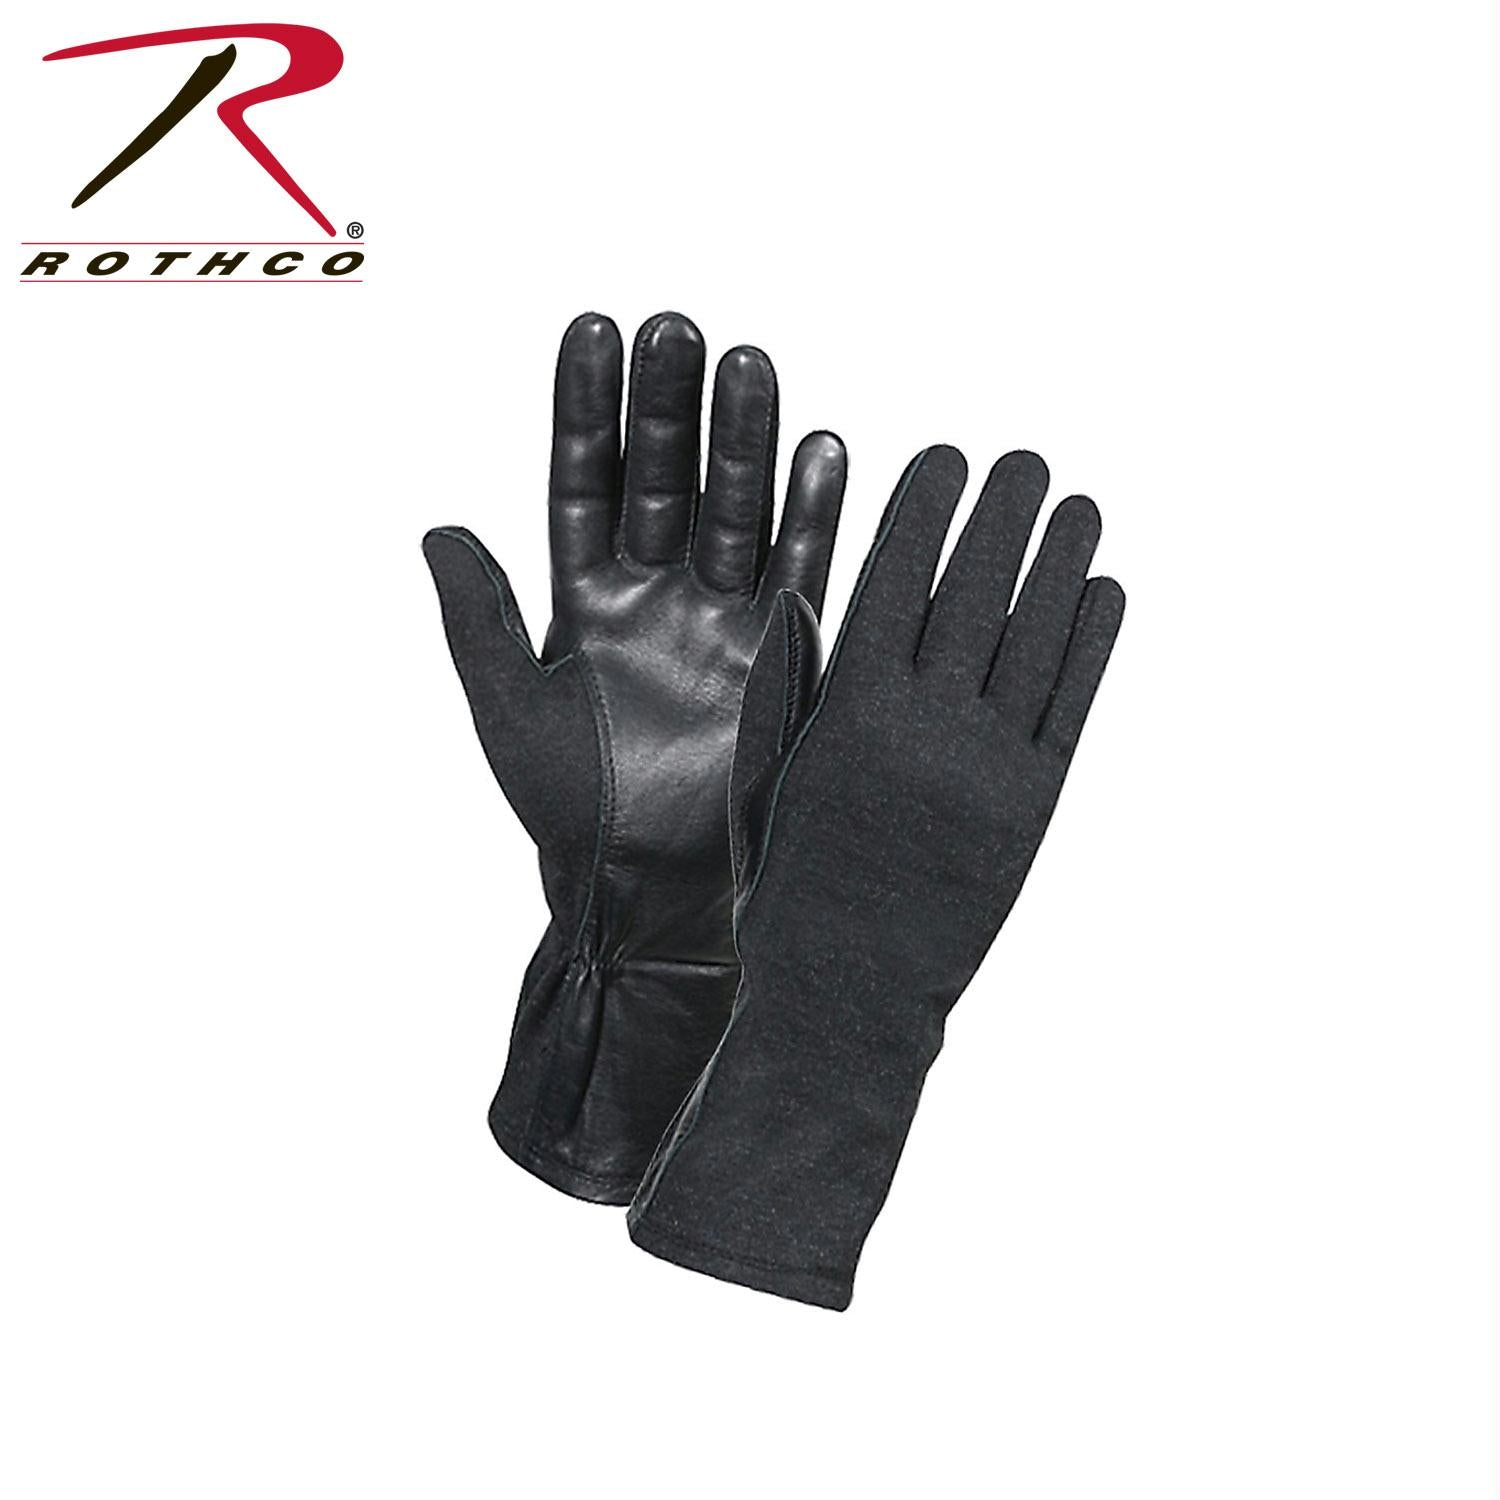 Rothco G.I. Type Flame & Heat Resistant Flight Gloves - Black / 12